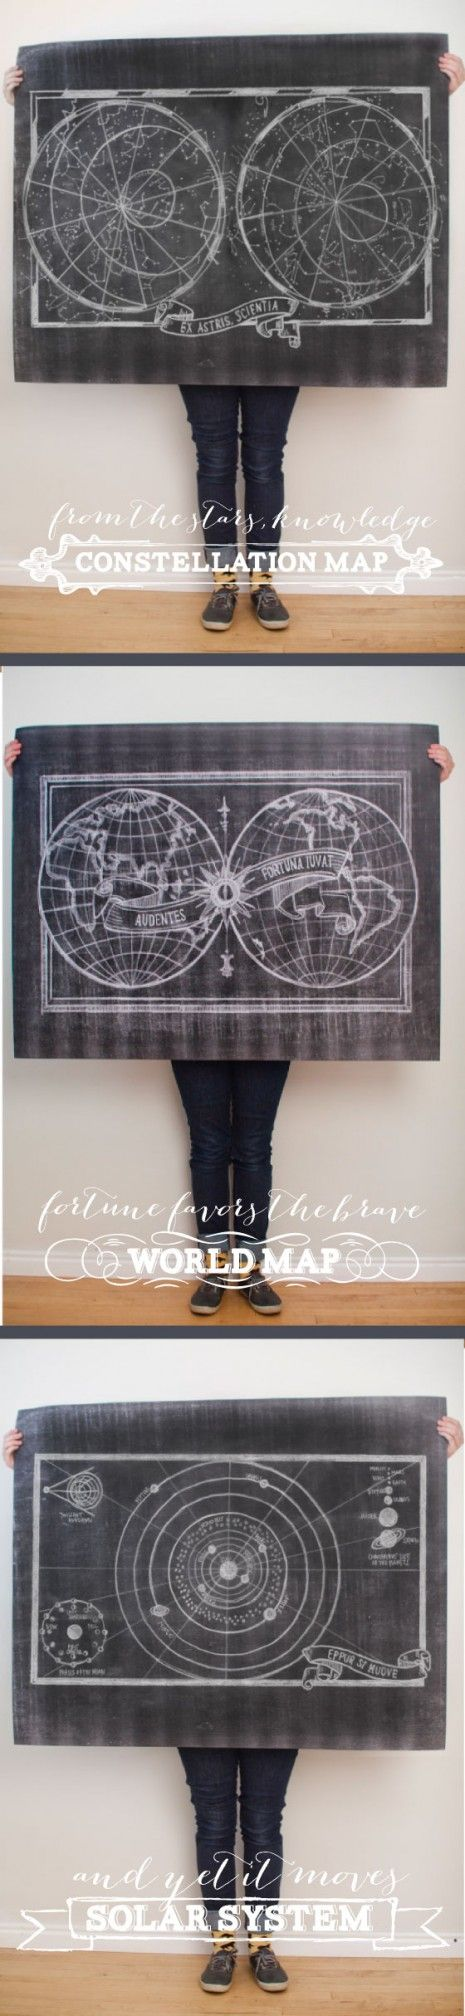 $5 Printable Chalk Maps by Caravanshoppe.com- 3 pack of maps including constellations, the Earth, and the solar system.  just download and print at Staples for only $6 each!